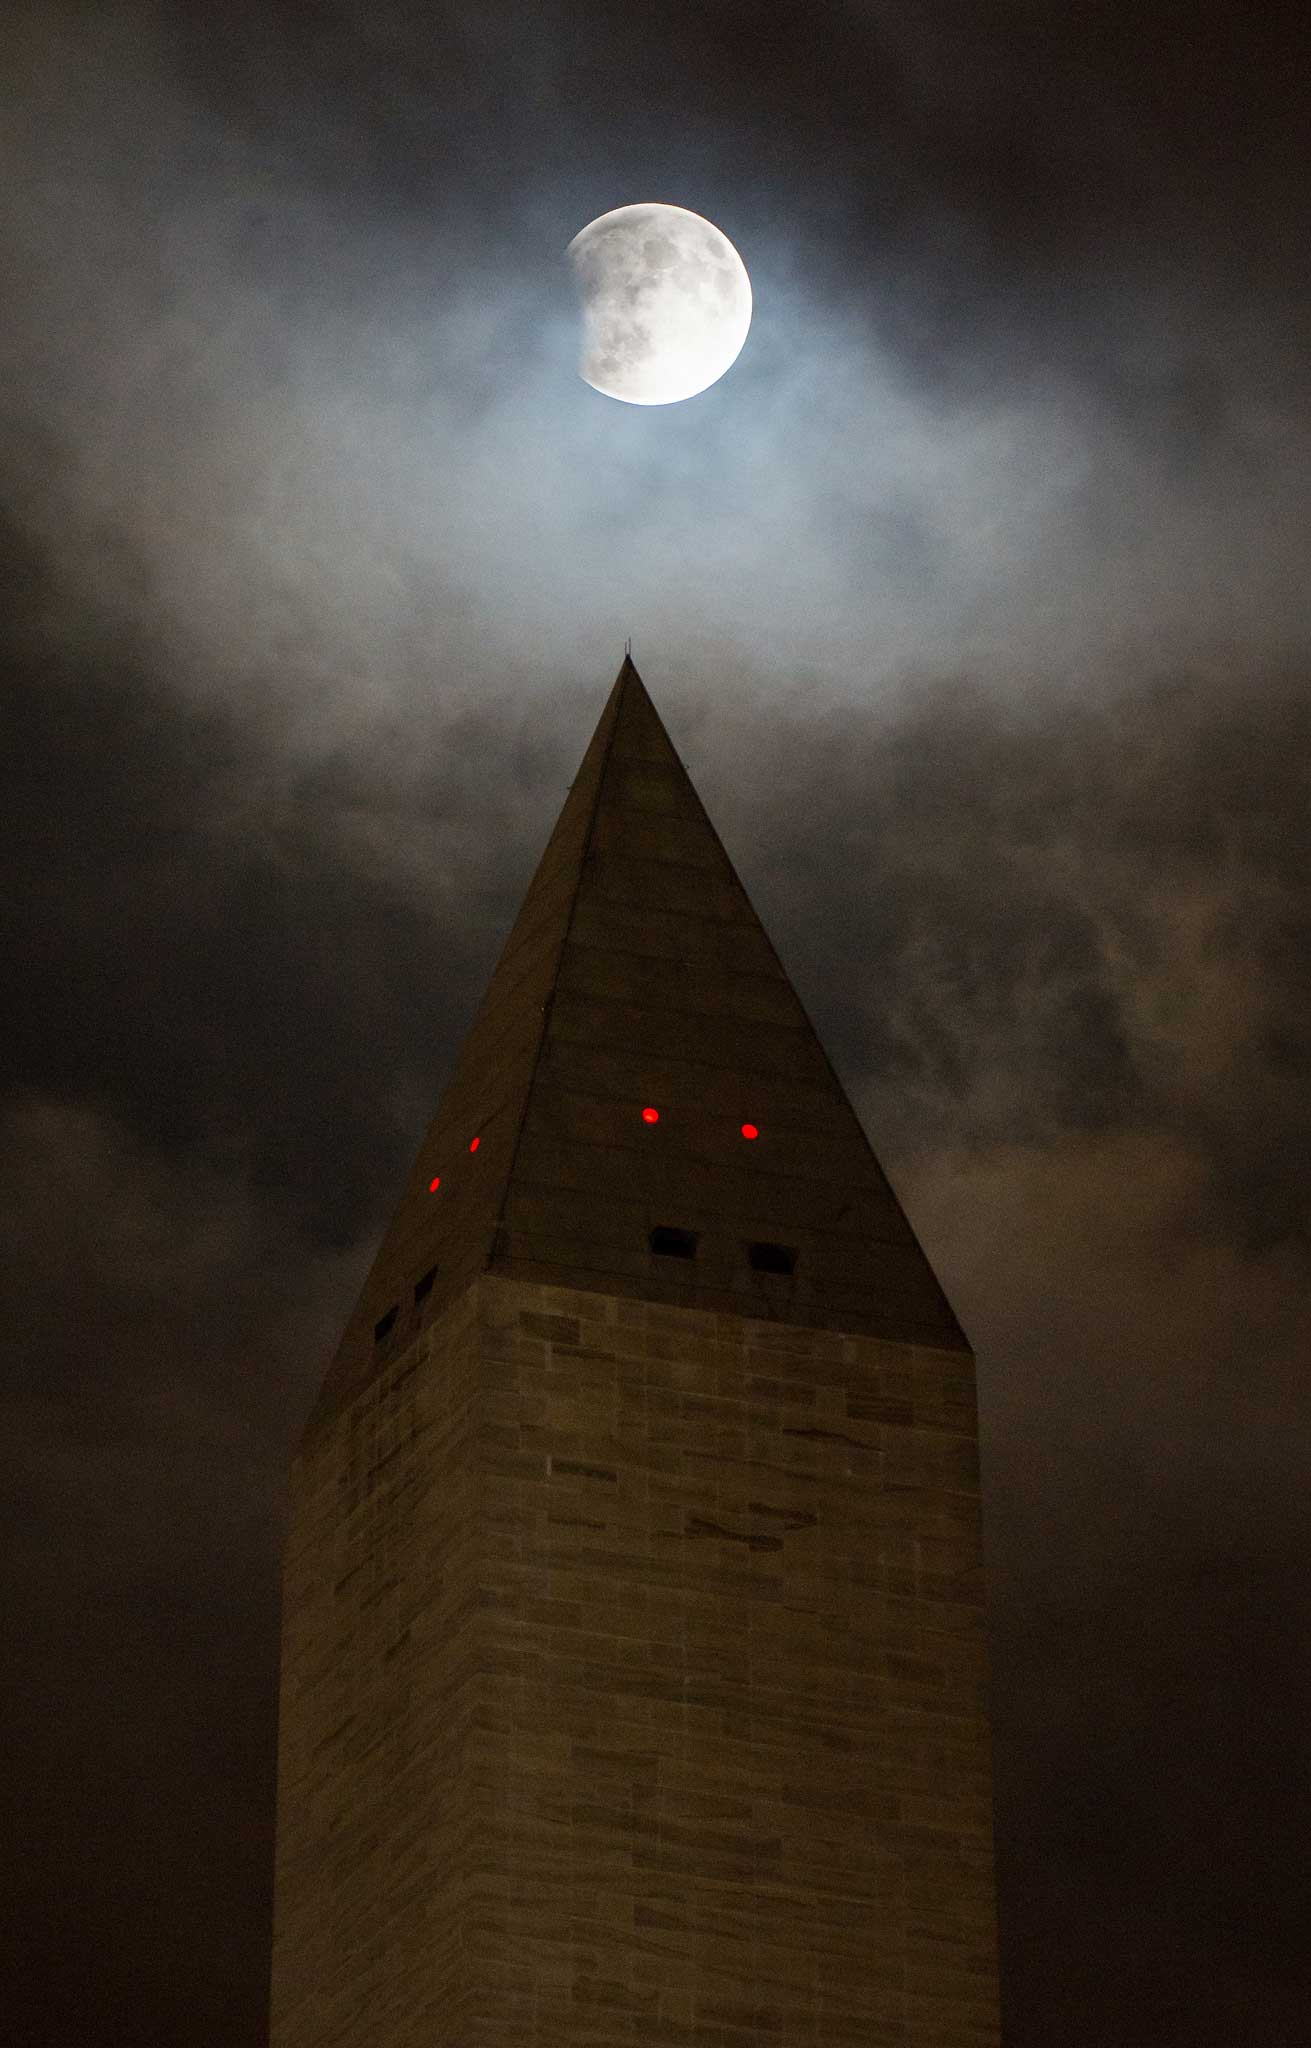 The supermoon, which occurs when the moon is full, with the closest approach to Earth on its elliptical orbit, above the Washington Monument on Sept. 27 2015. Making the phenomenon even more dramatic: a total lunar eclipse also occurred that evening.